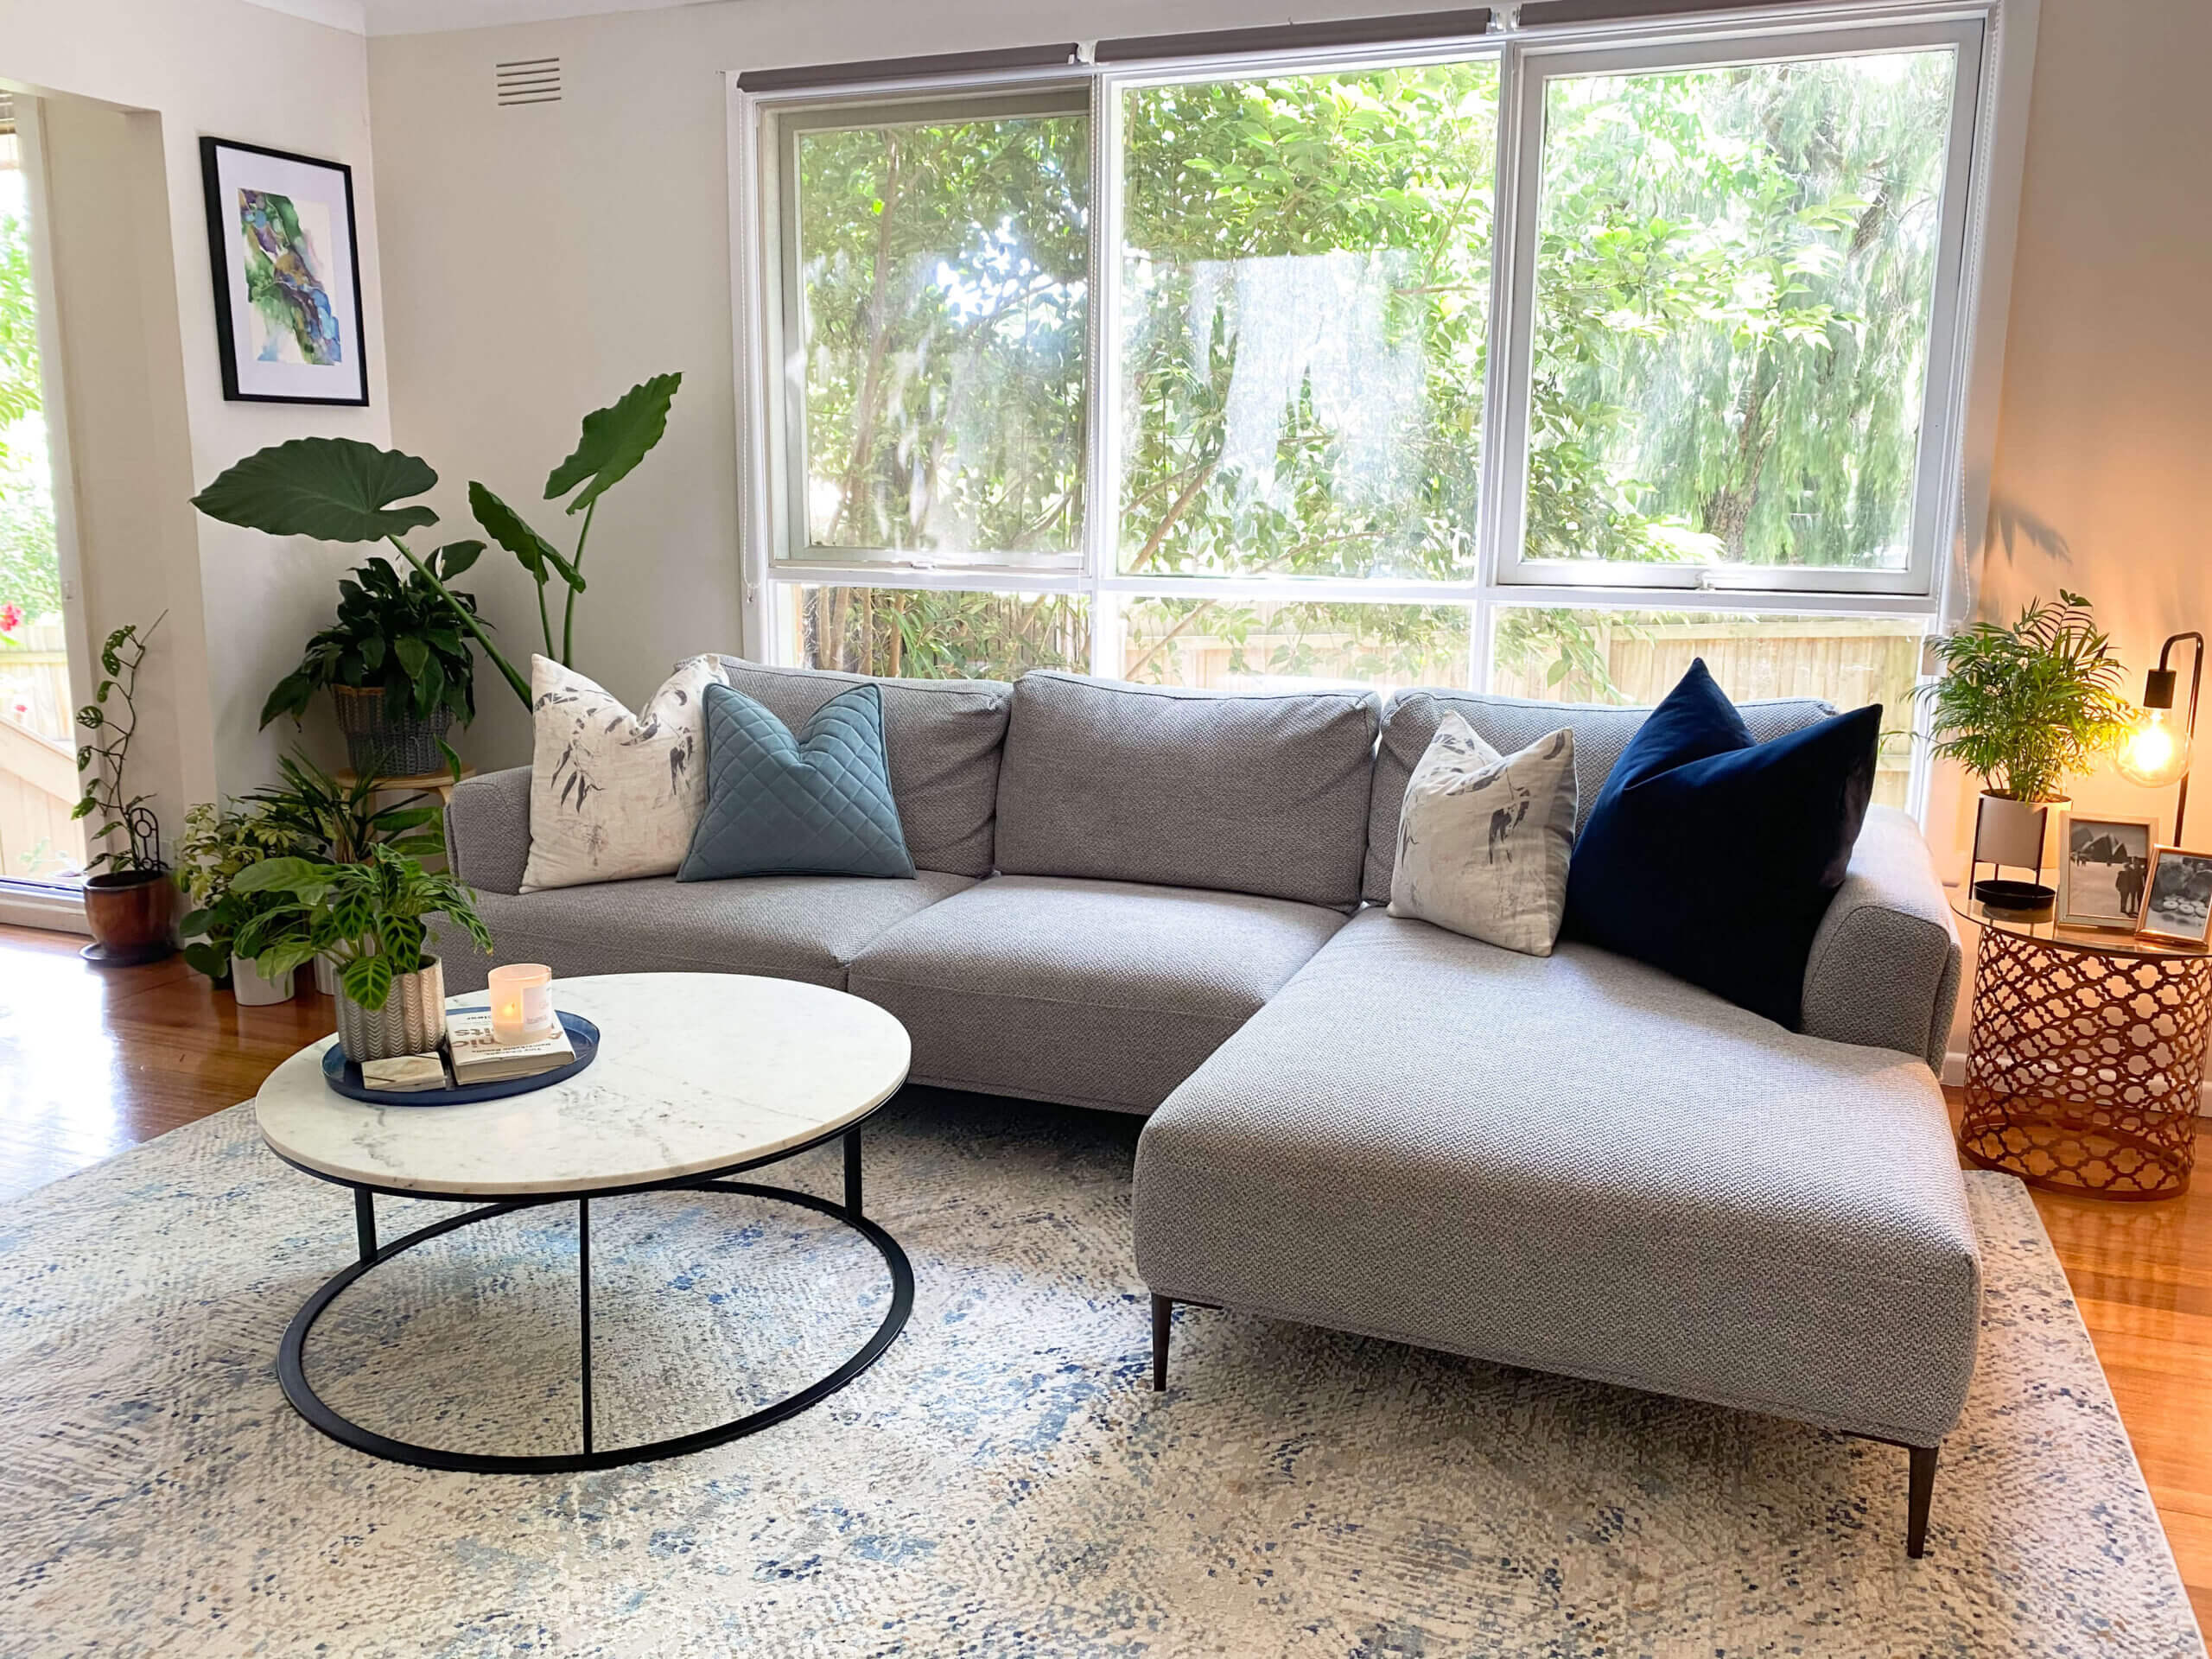 Style your living room with plants and natural lighting.